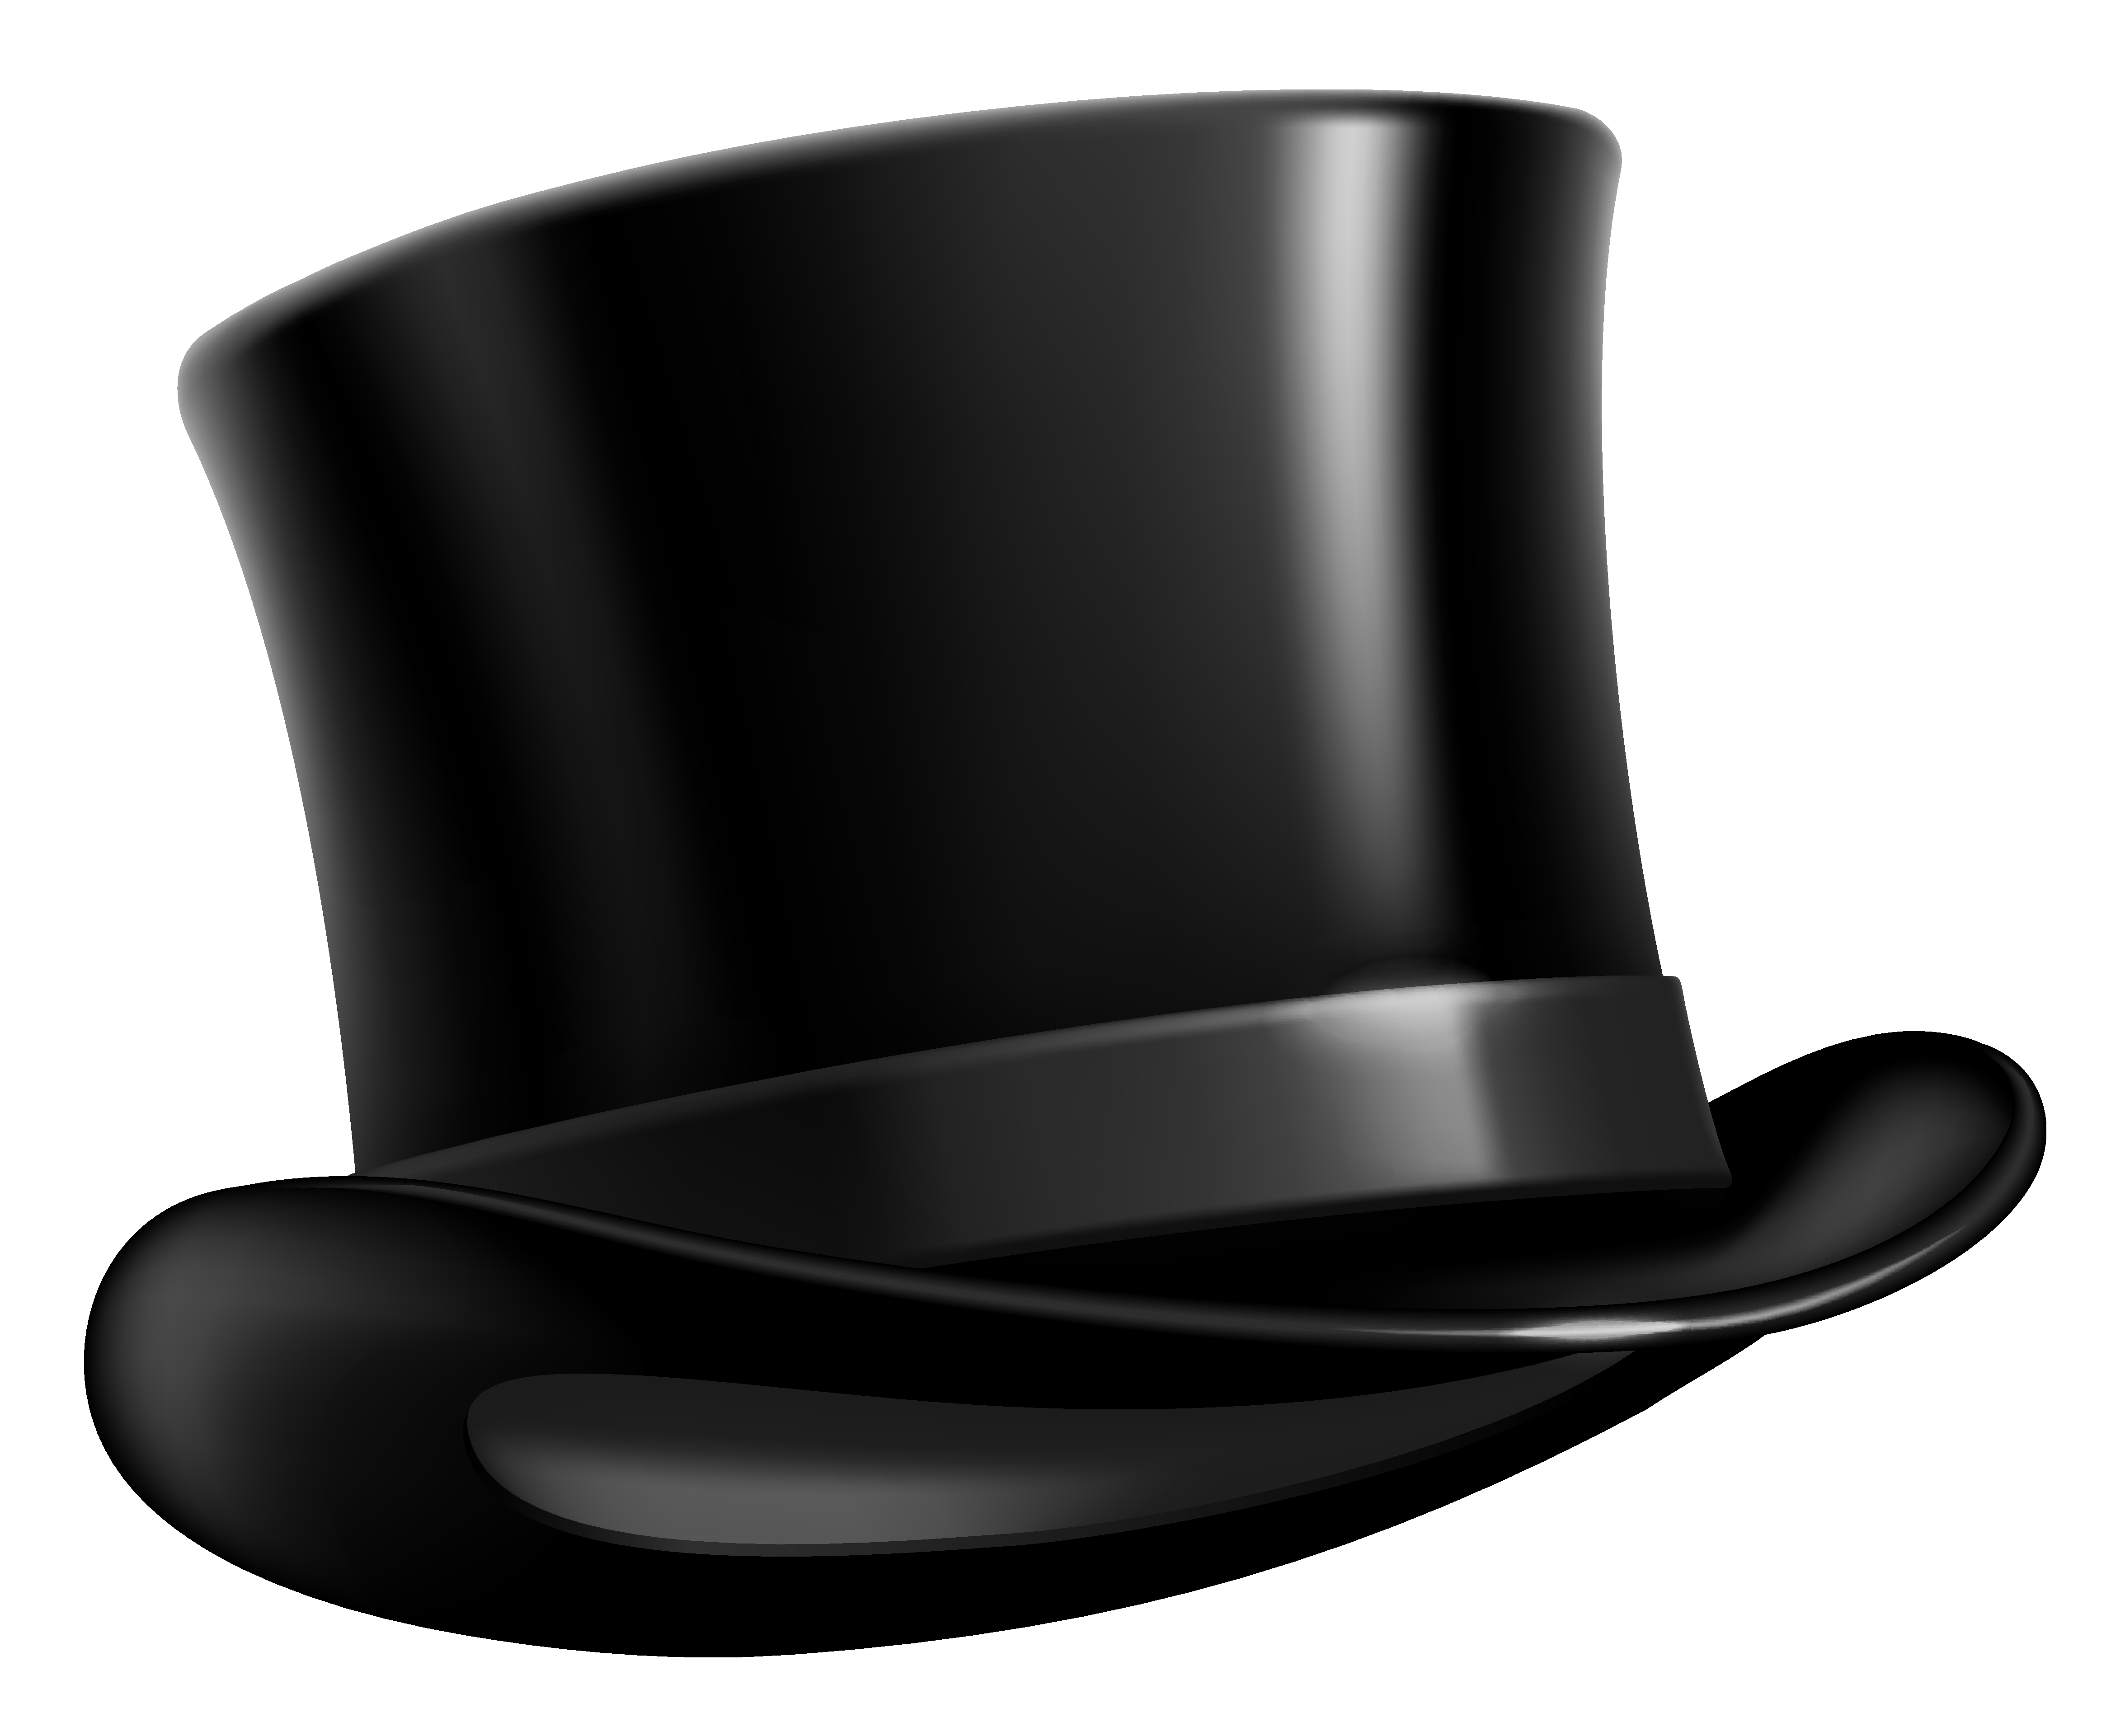 4702x3842 Black Top Hat Png Clipart Pictureu200b Gallery Yopriceville